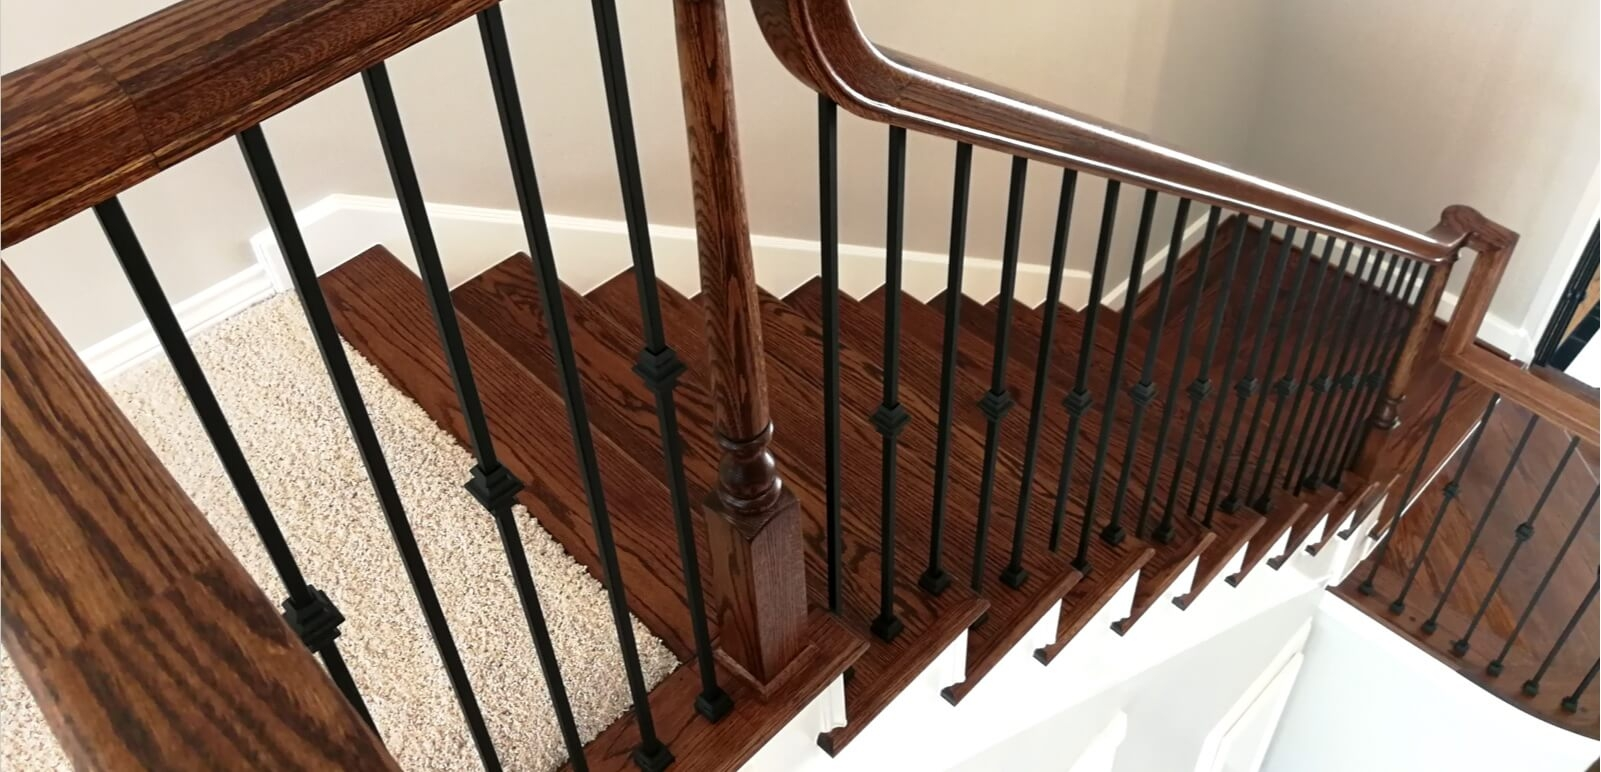 Houston Stair Parts Stair Remodel Iron Balusters Railing | Replacement Wood Stair Balusters | Cheap | Horizontal | Hallway | Split Entry | Cast Iron